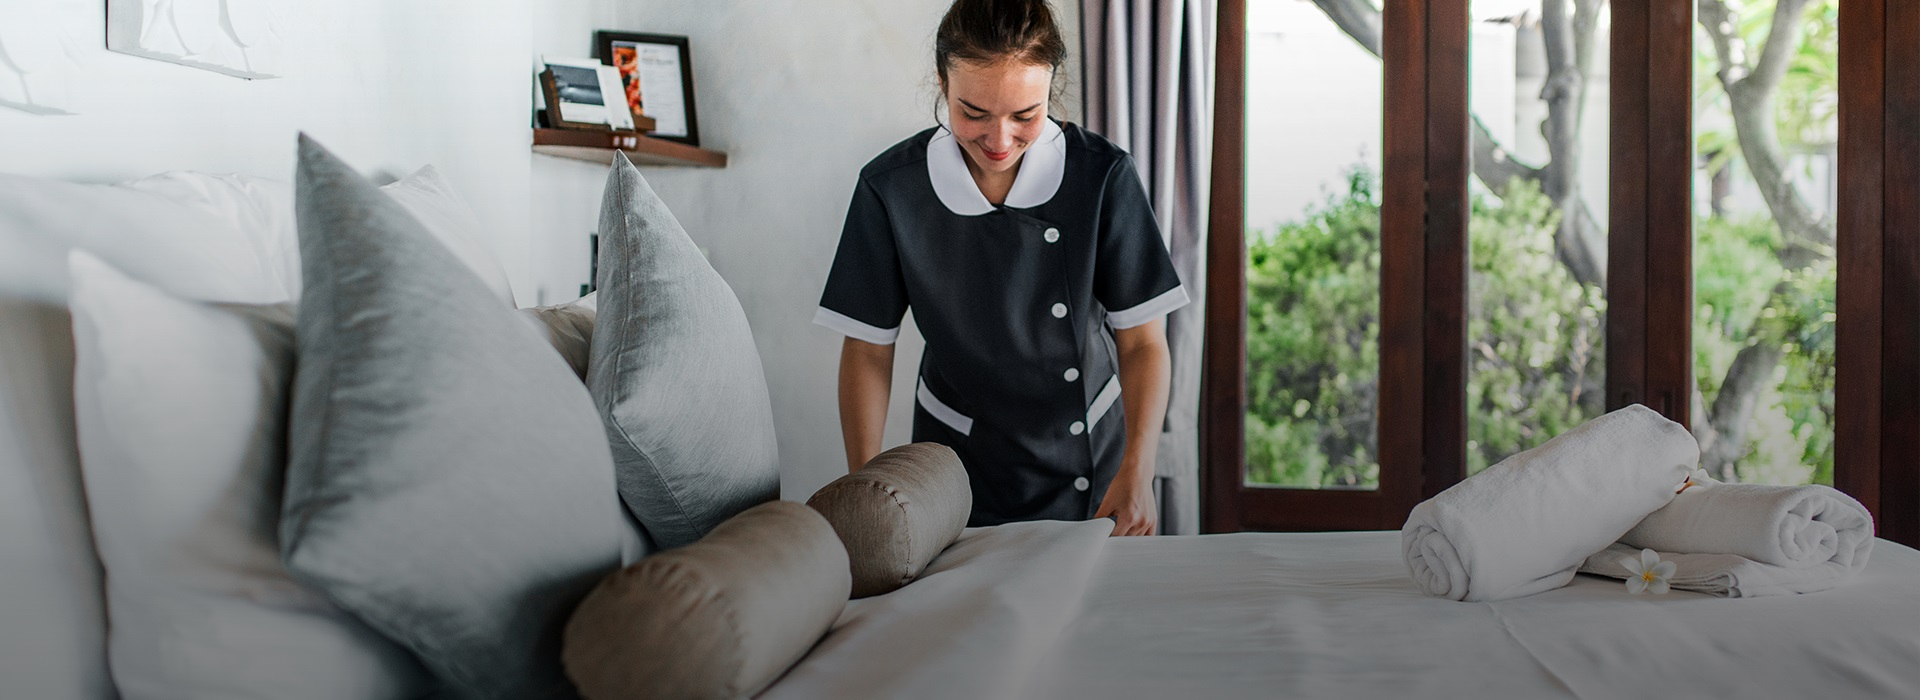 The maid makes the bed